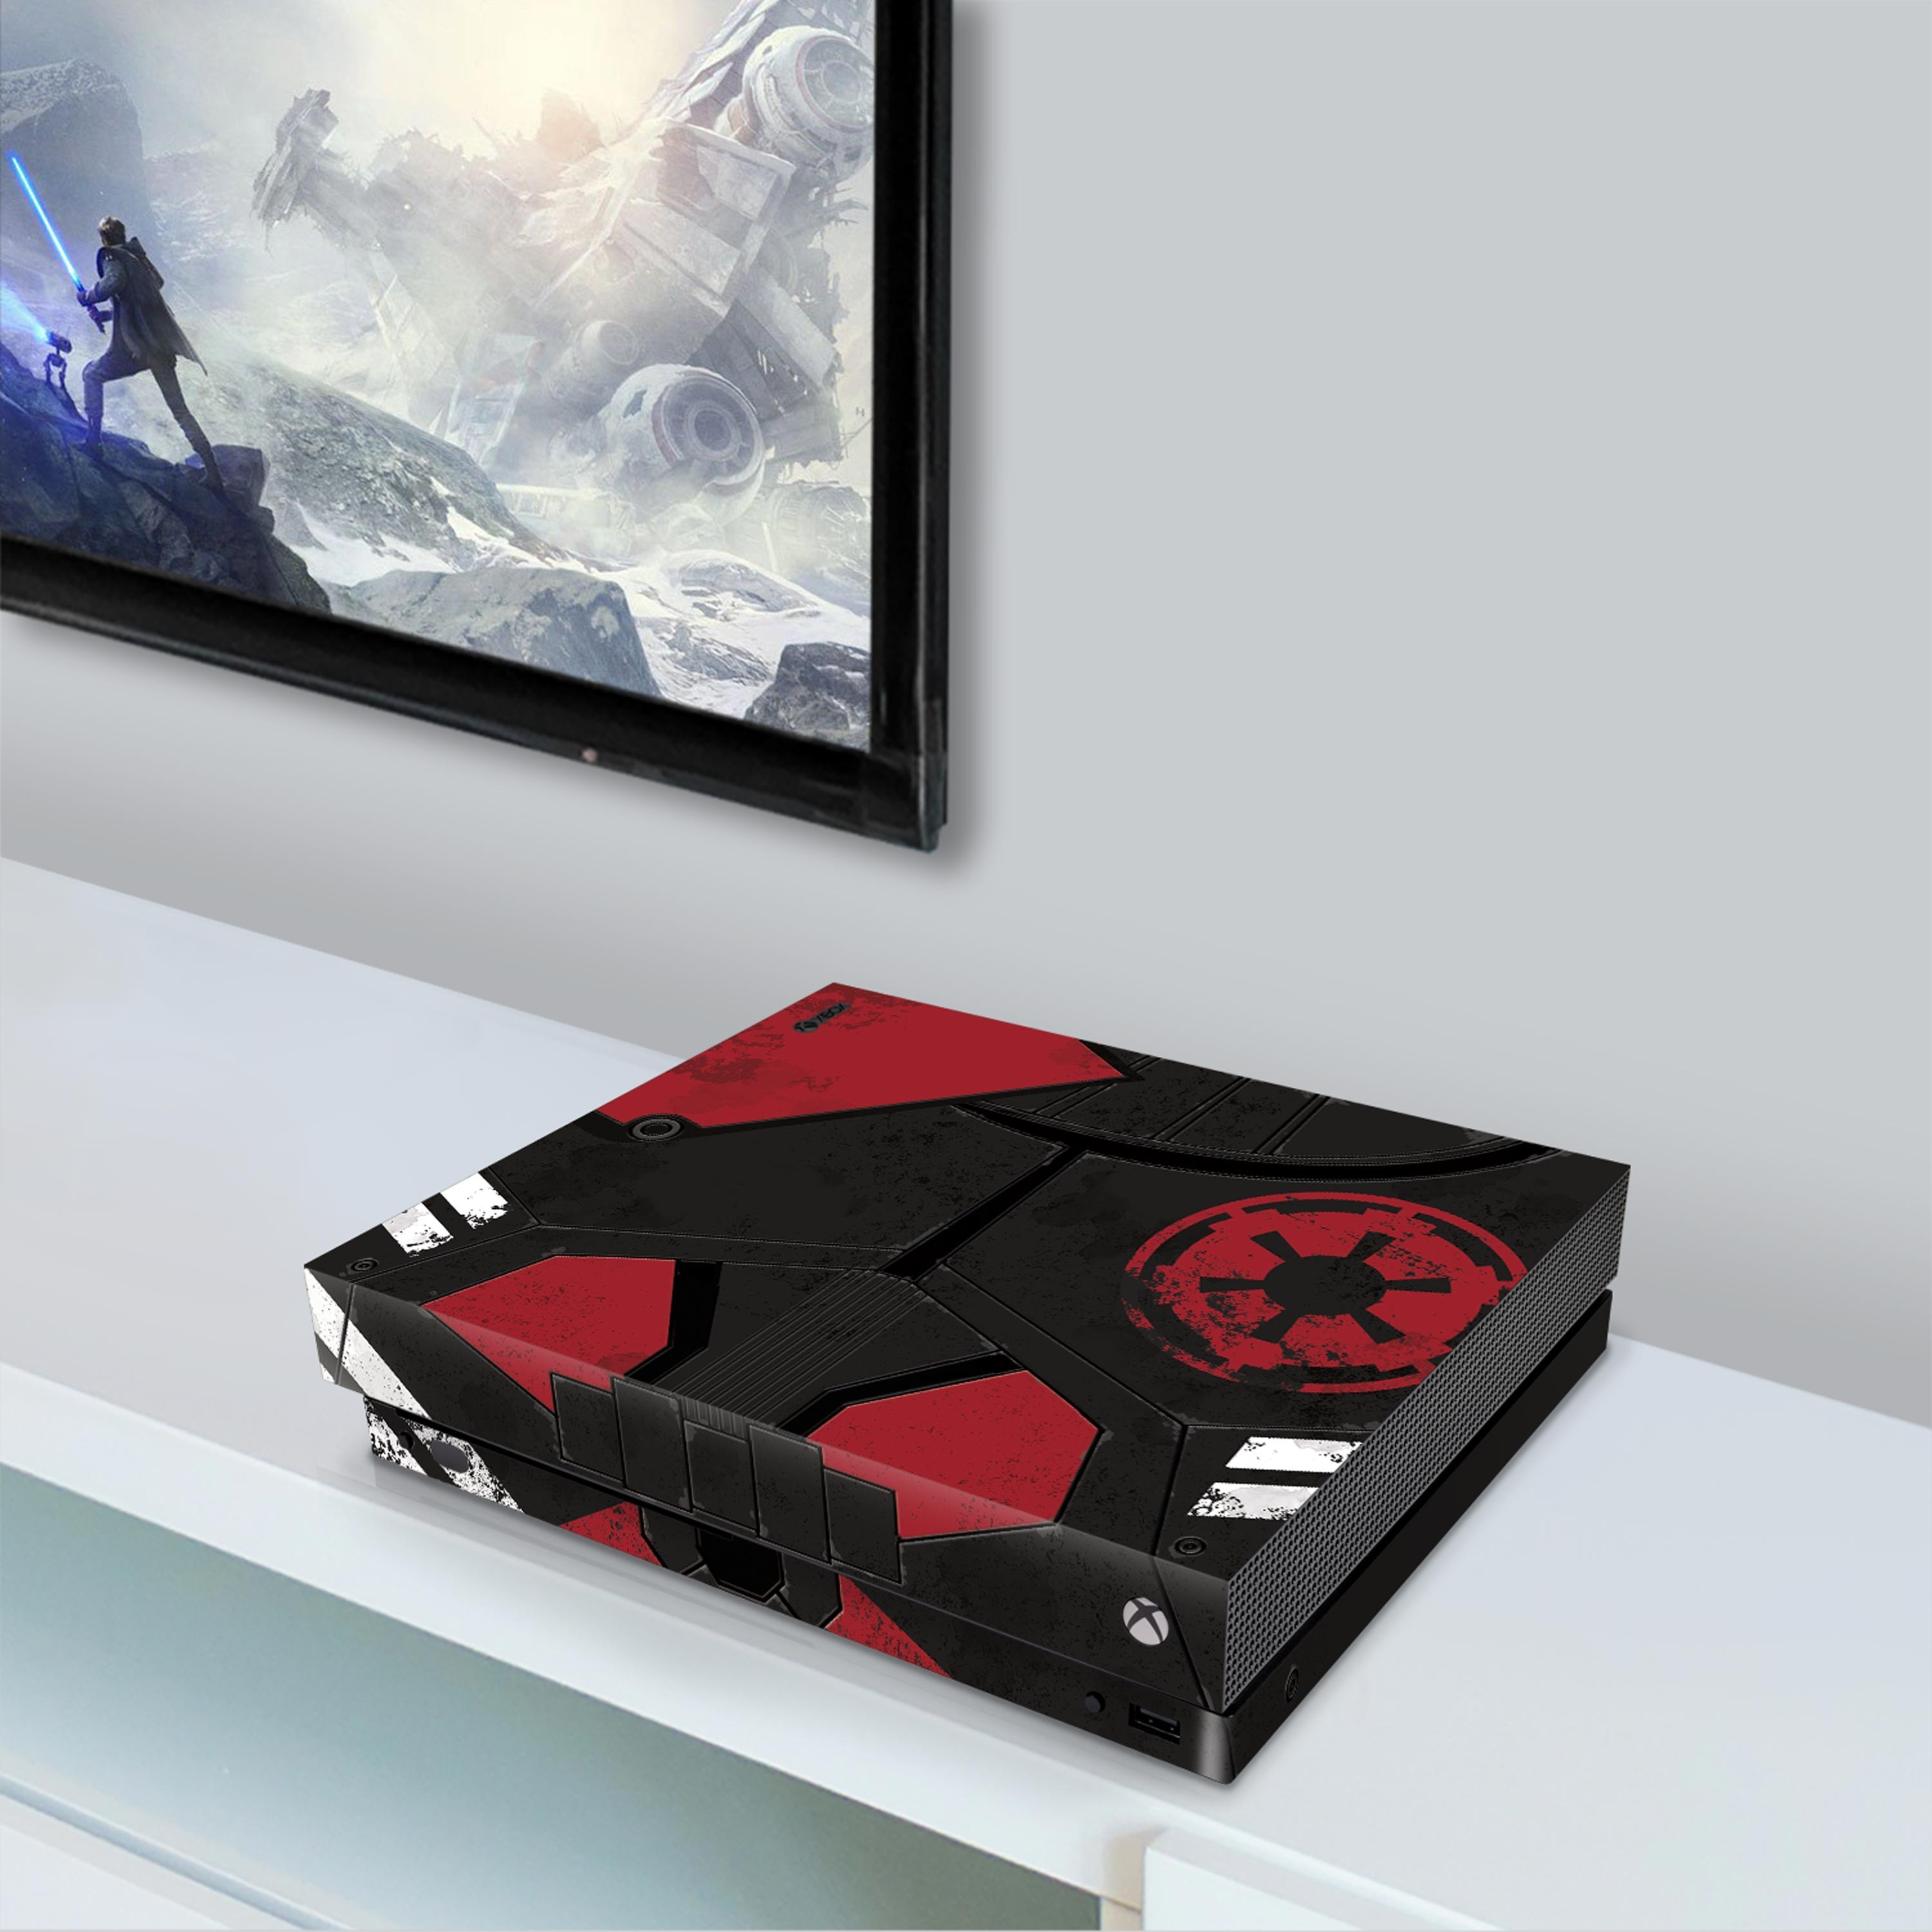 Xbox One X Console Skin with a Star Wars Jedi Fallen Order Design, Image 1